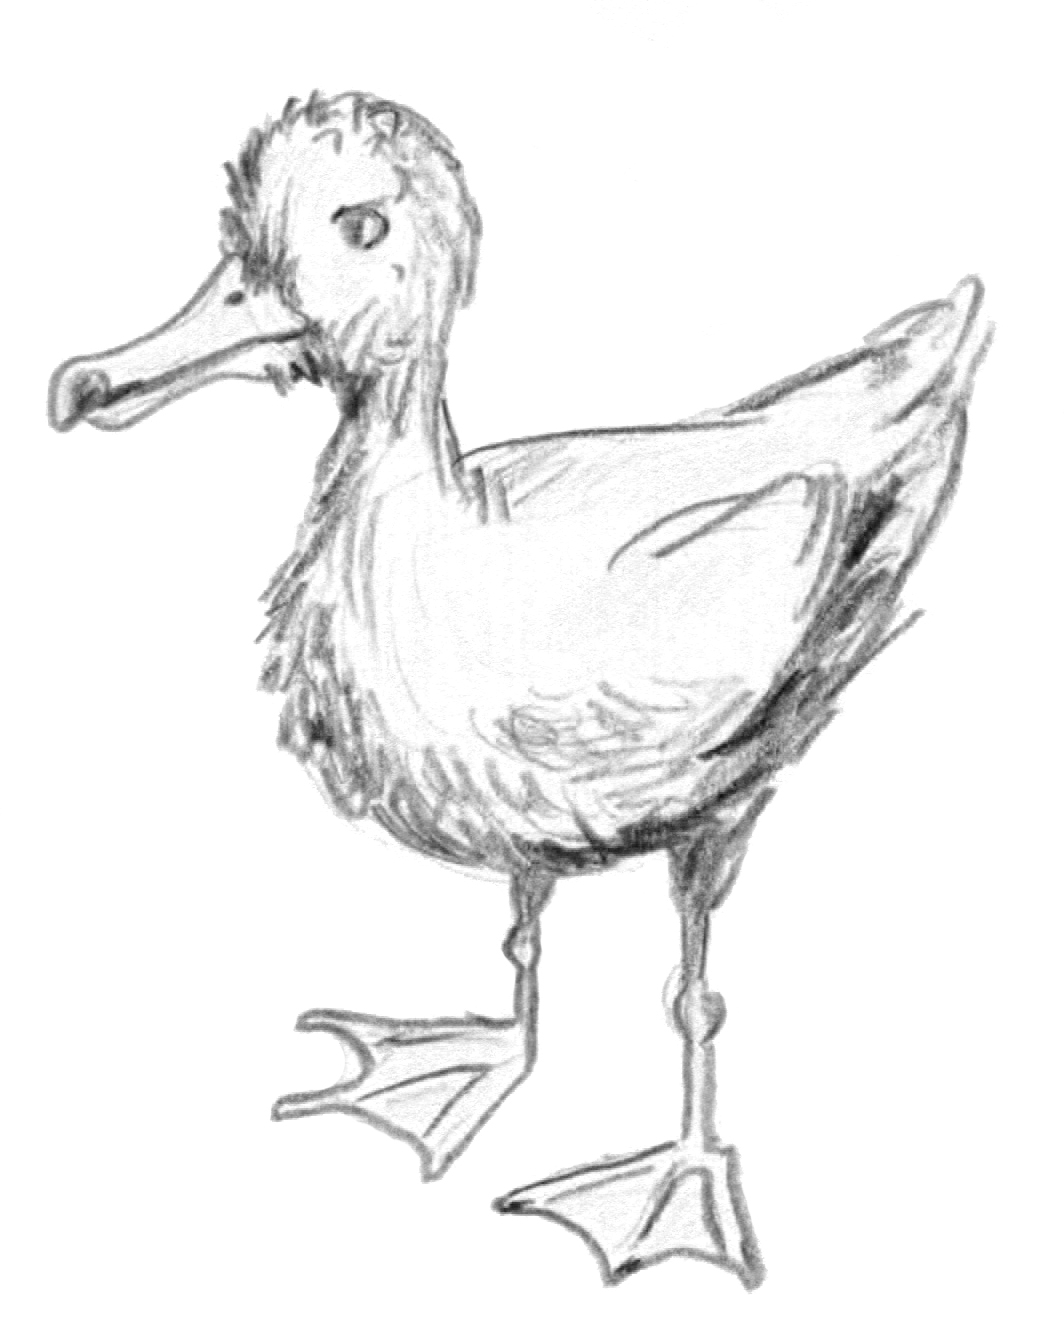 A baby seagull drawn by Alan after one followed us from a restaurant